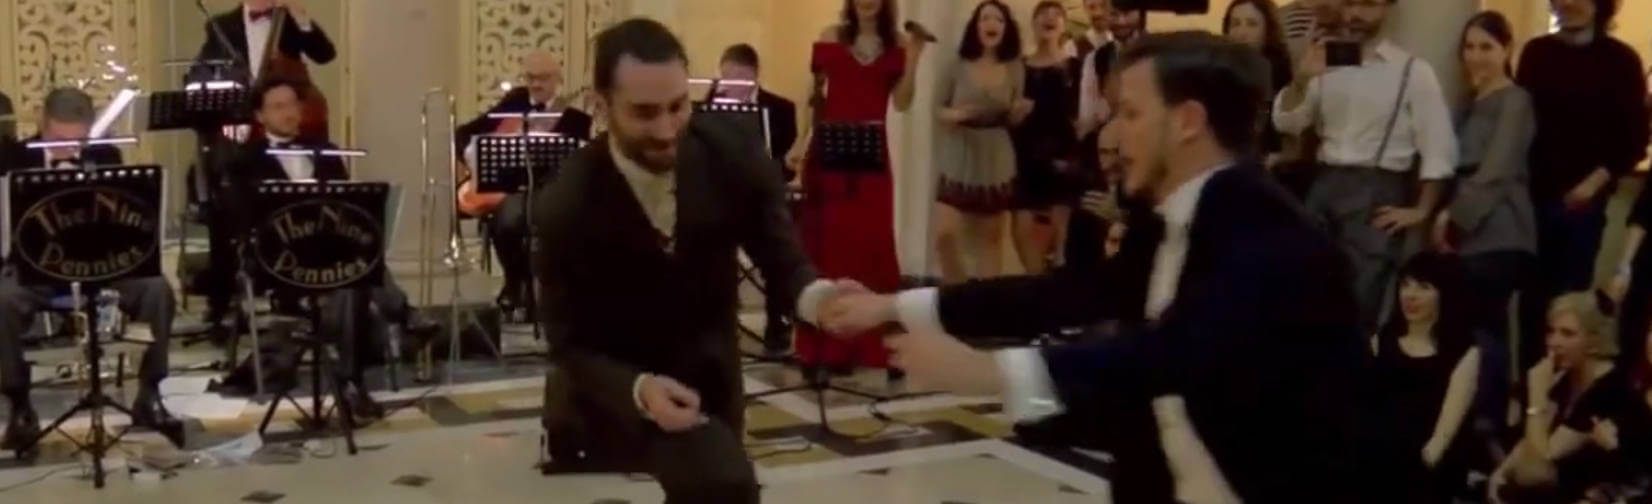 First Dance by a same sex couple